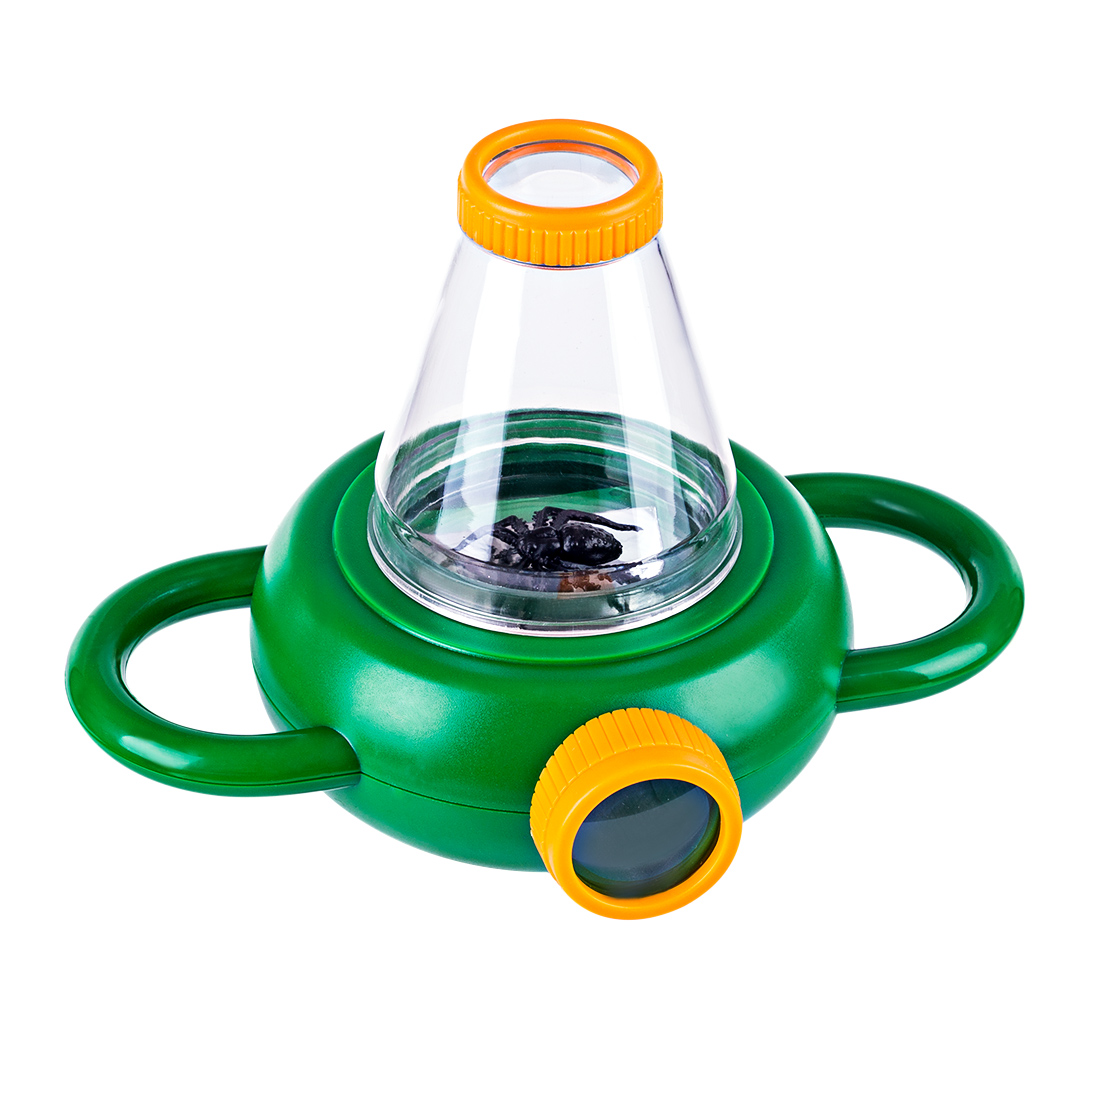 Two Way Insect Observer Children's Educational Insect Magnifying Glass Student Science Biological Observation Catcher Magn